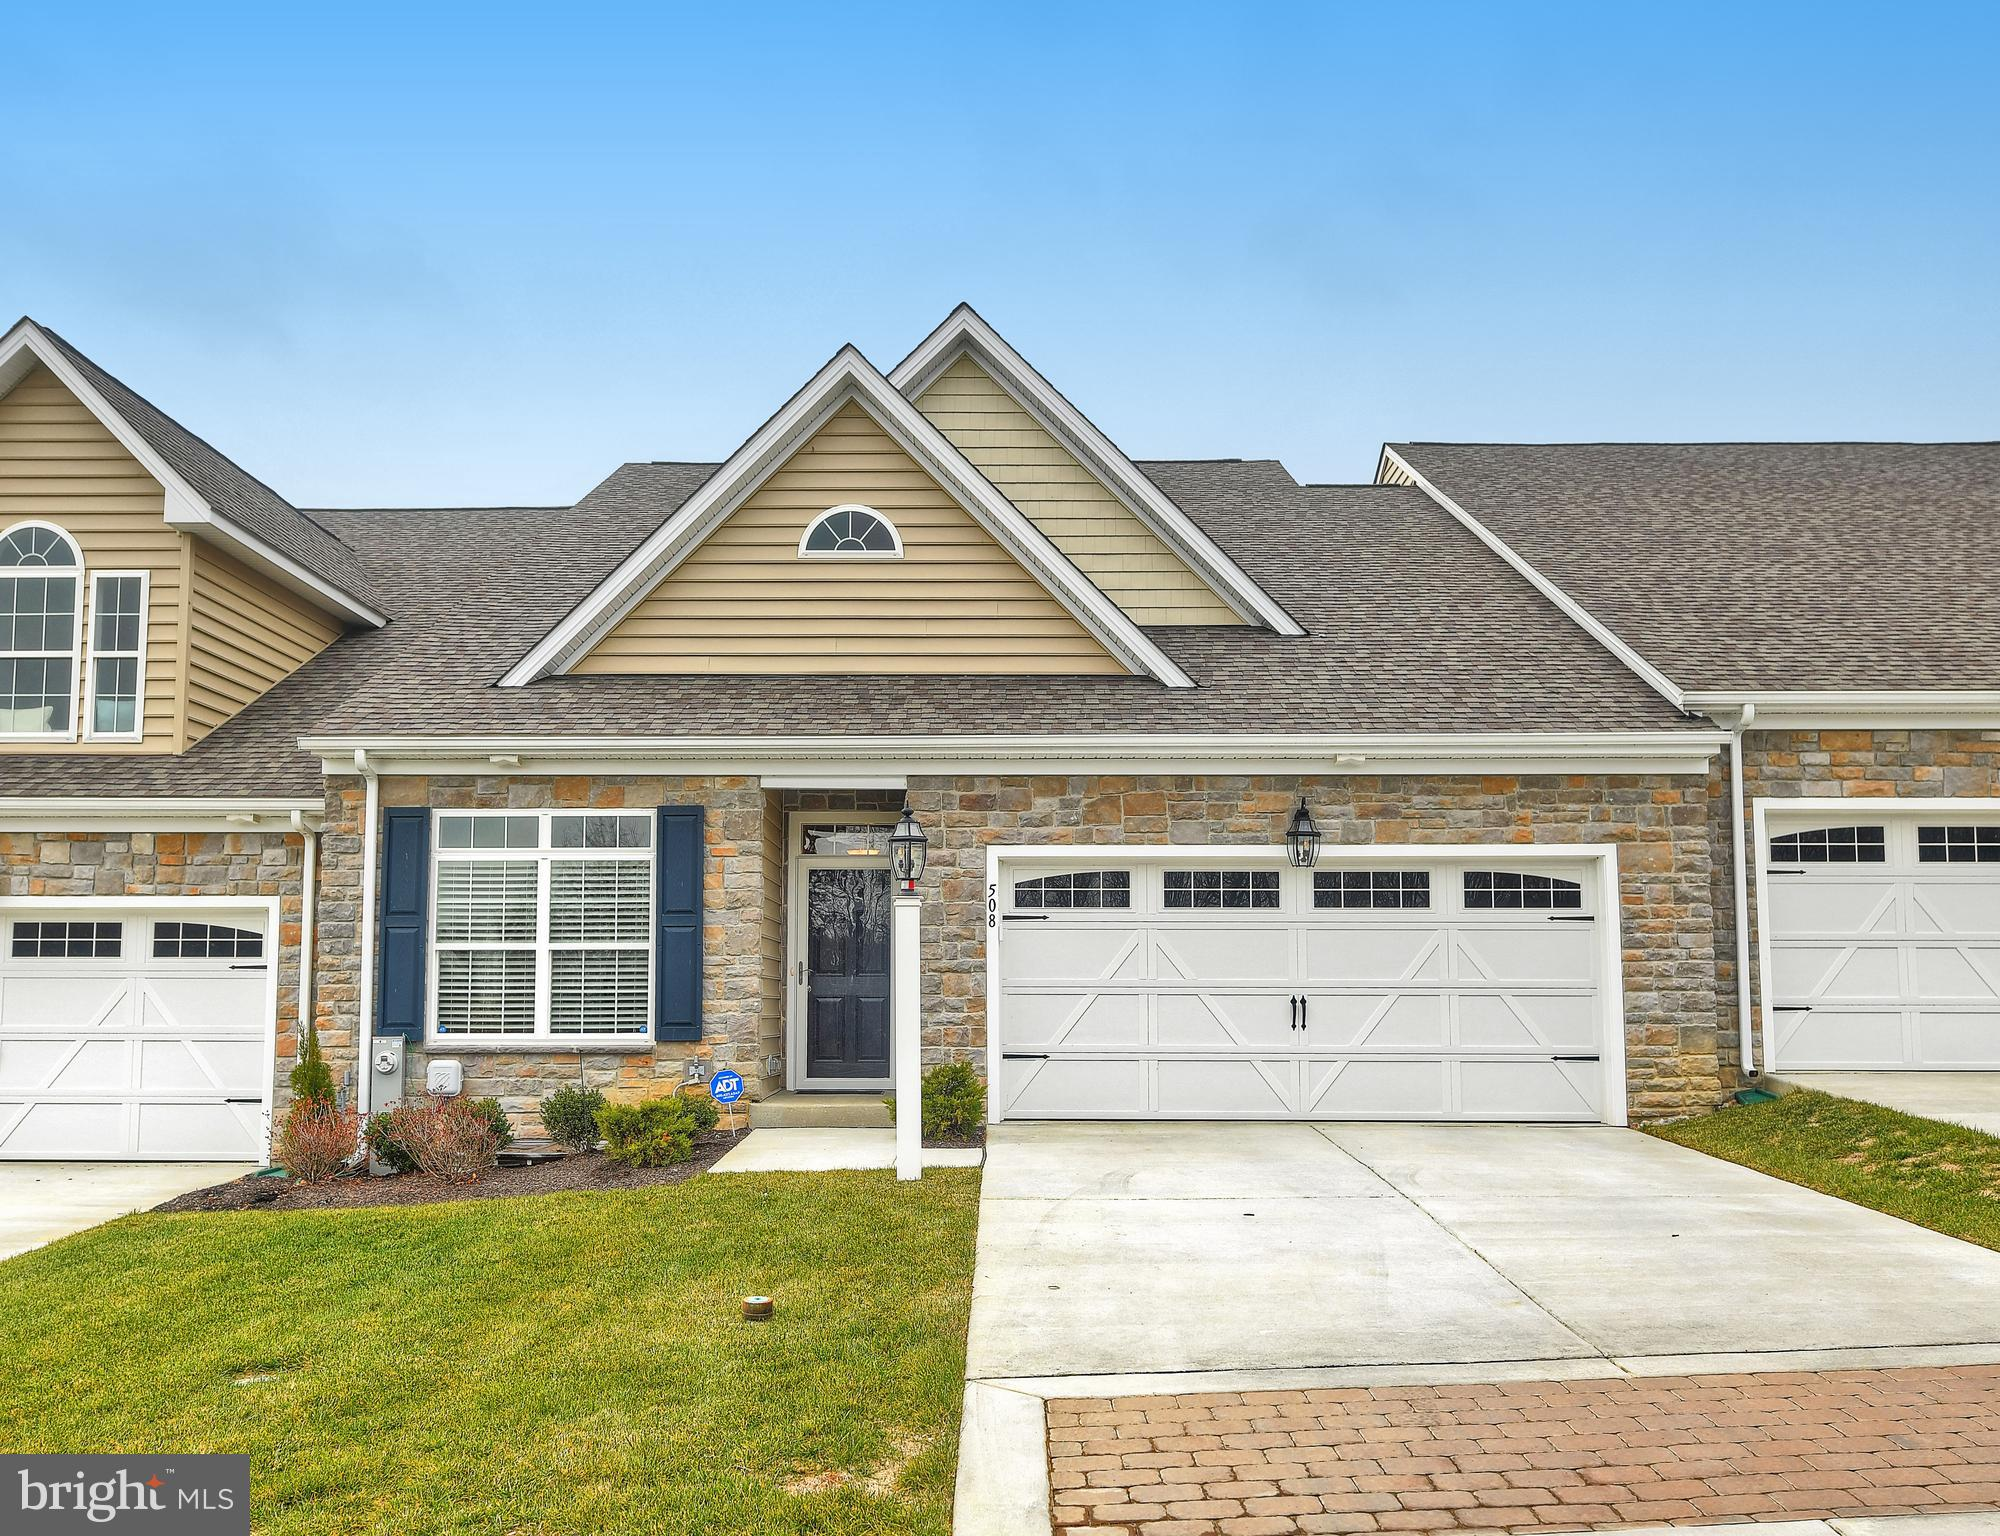 508 TEMPERENCE HILL Wy, Havre De Grace, MD, 21078